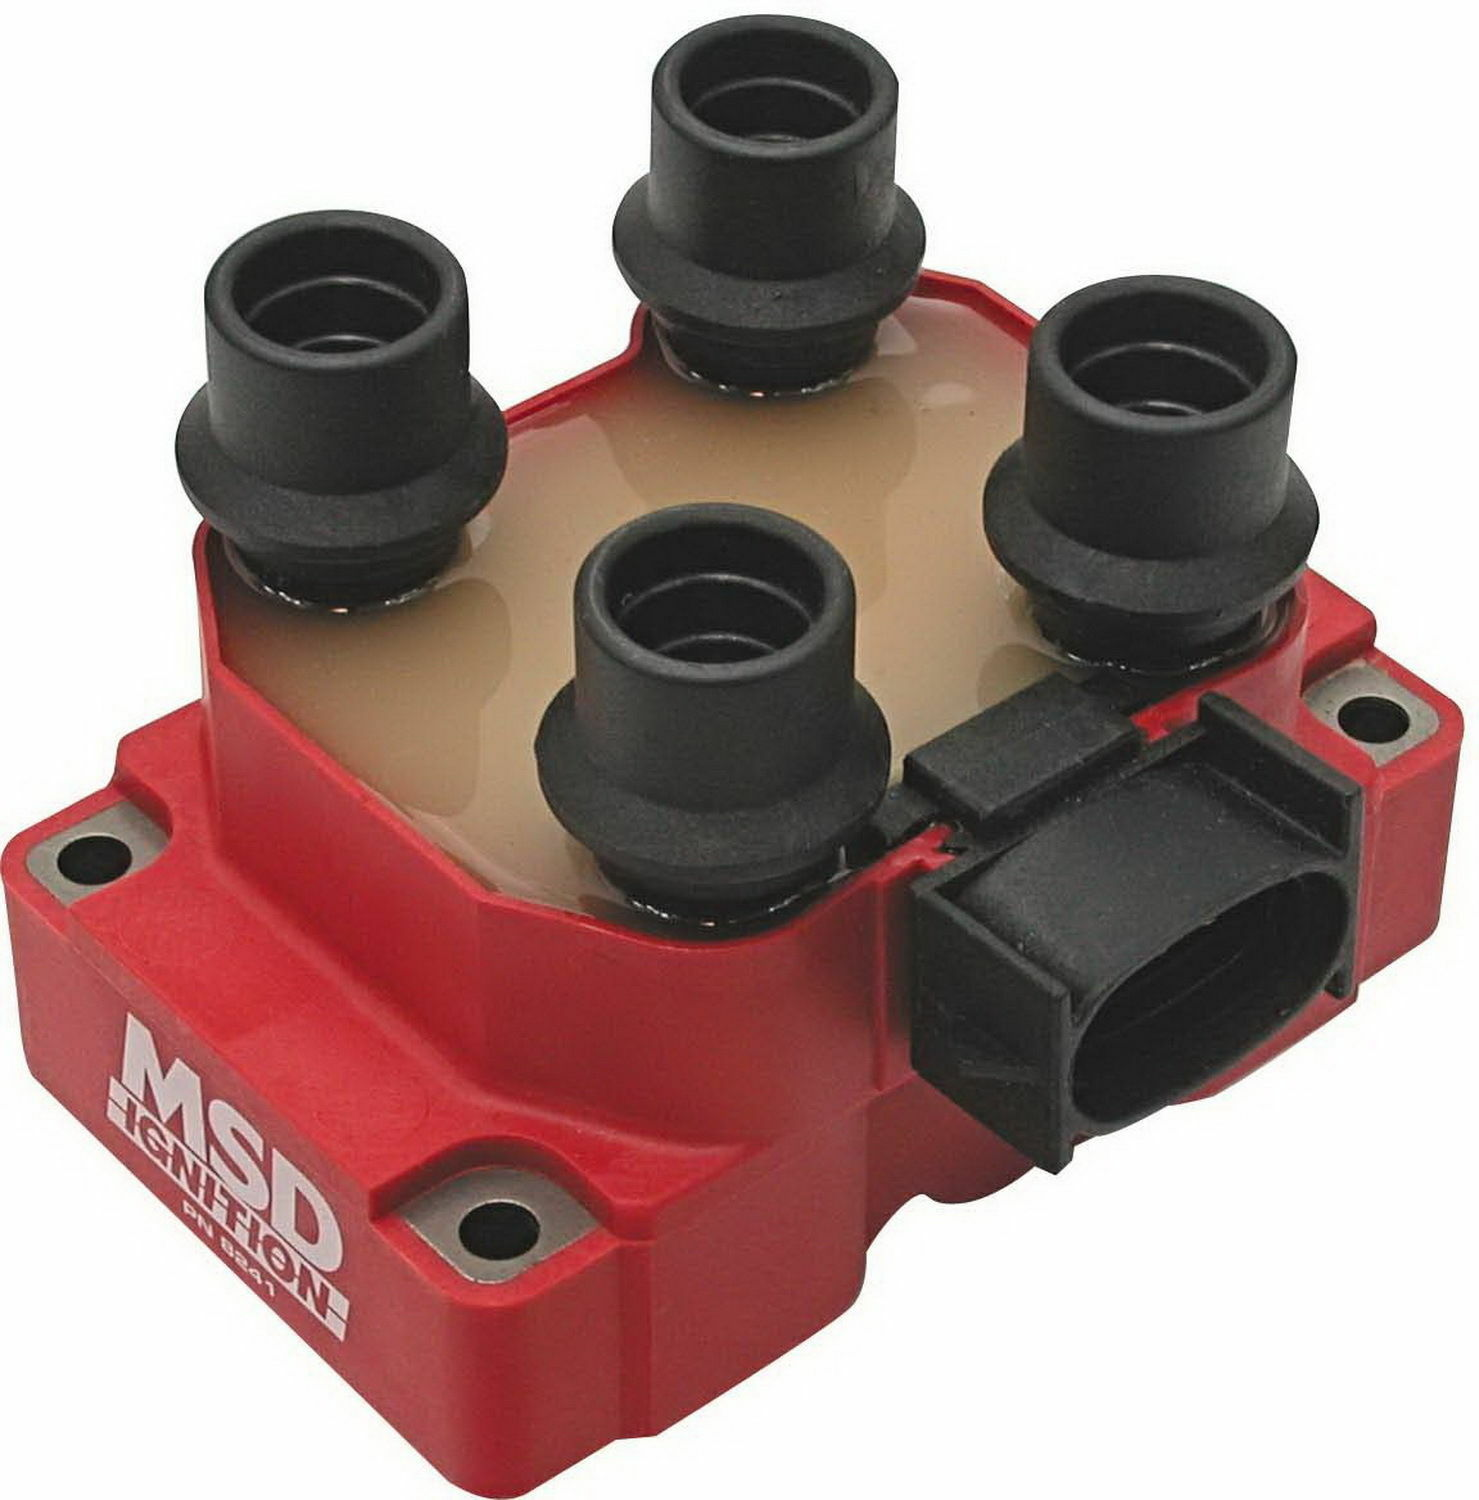 Common Signs of a Faulty Ignition Coil